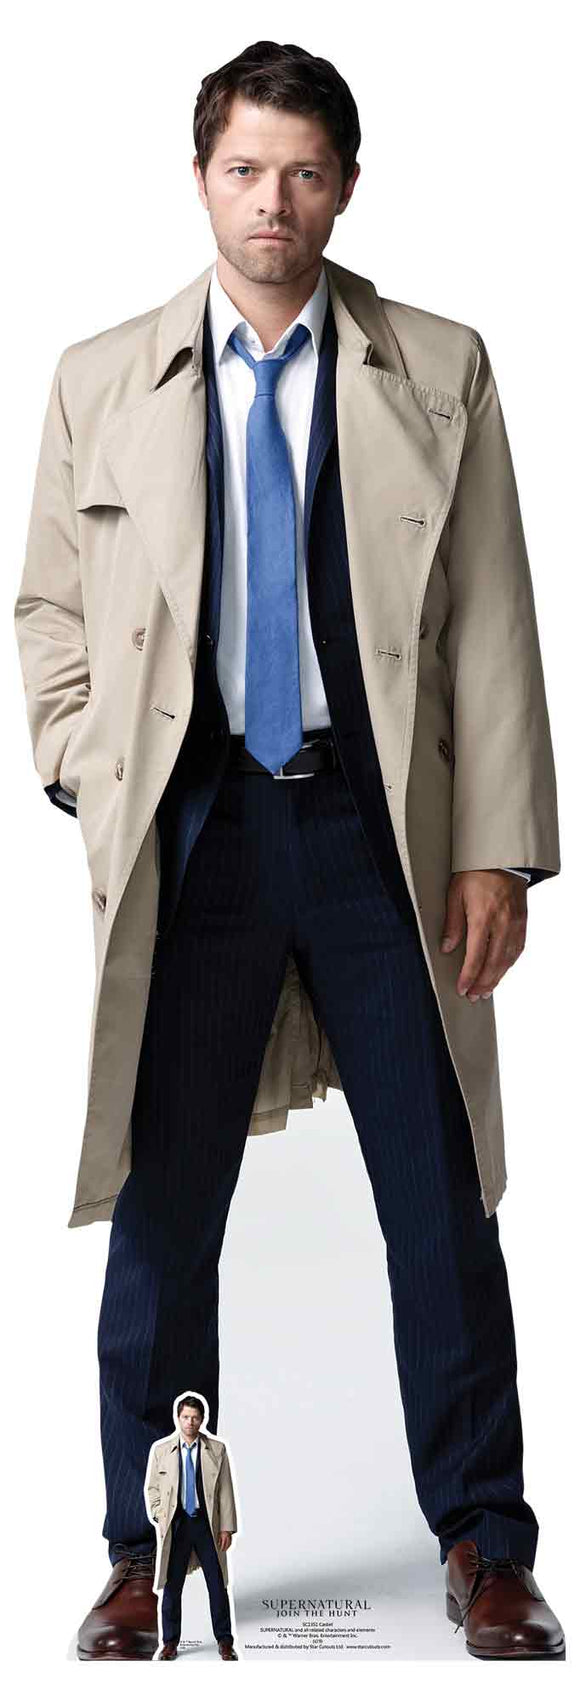 Castiel (Supernatural) Misha Collins lifesize cutout